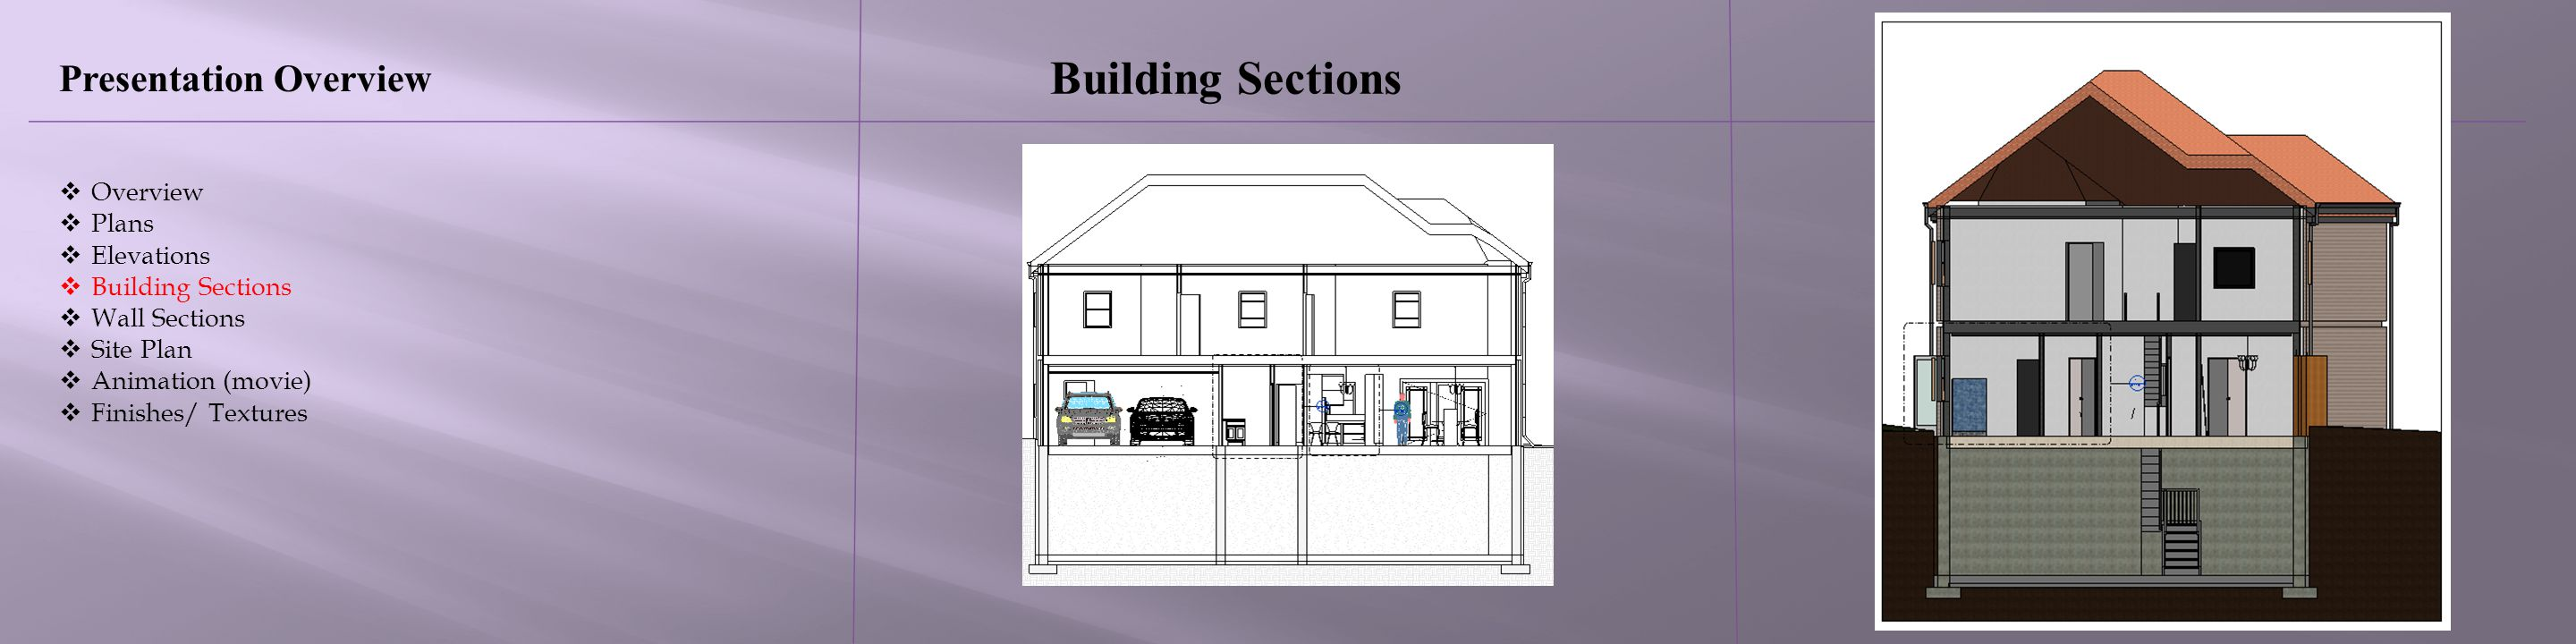 Building Sections Presentation Overview Overview Plans Elevations